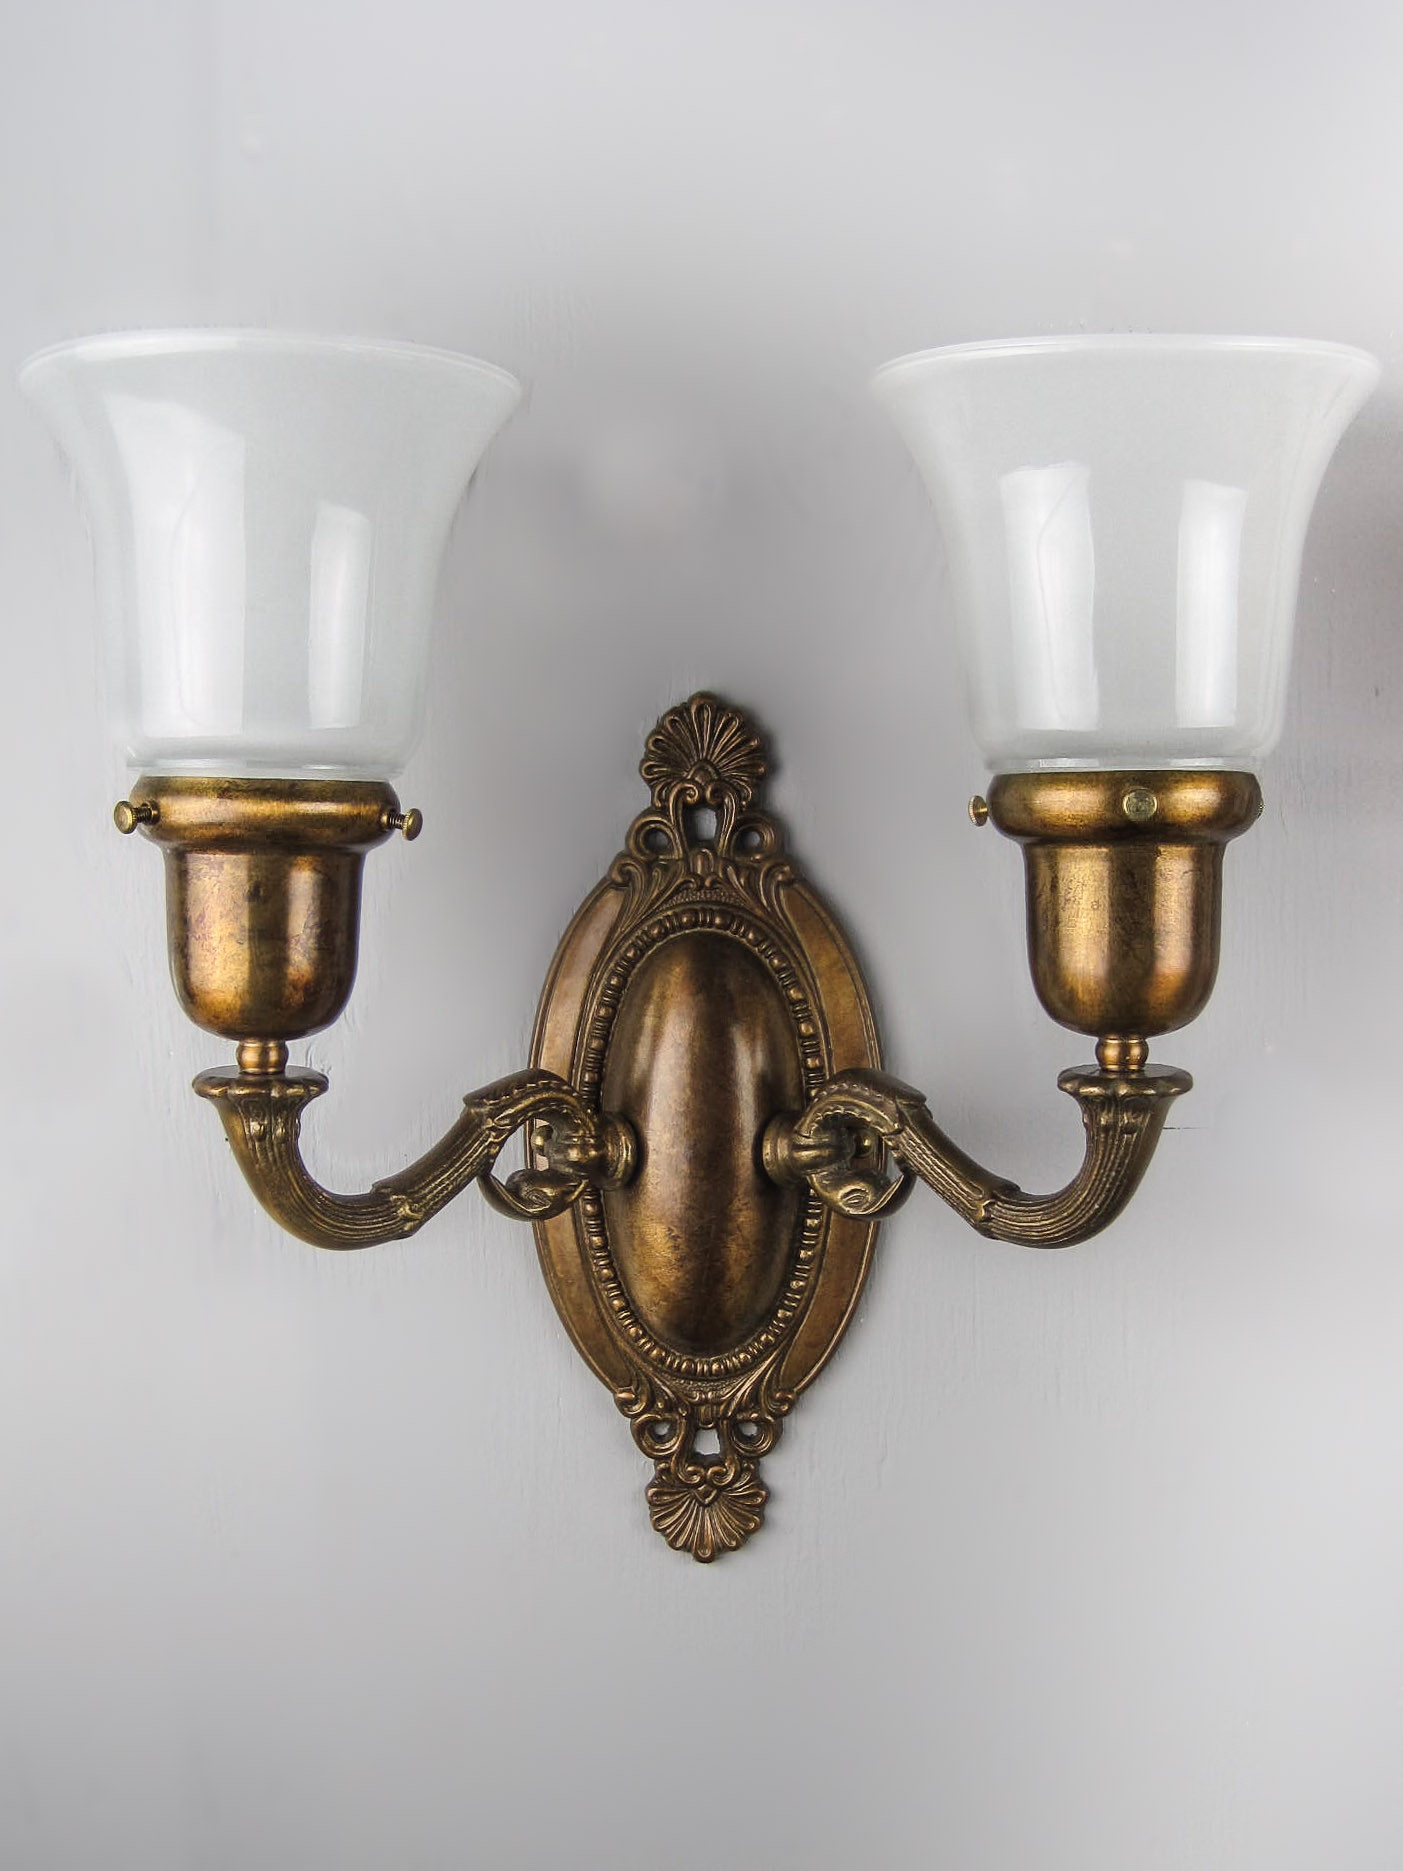 Edwardian Dolphin Wall Sconce Double Arm